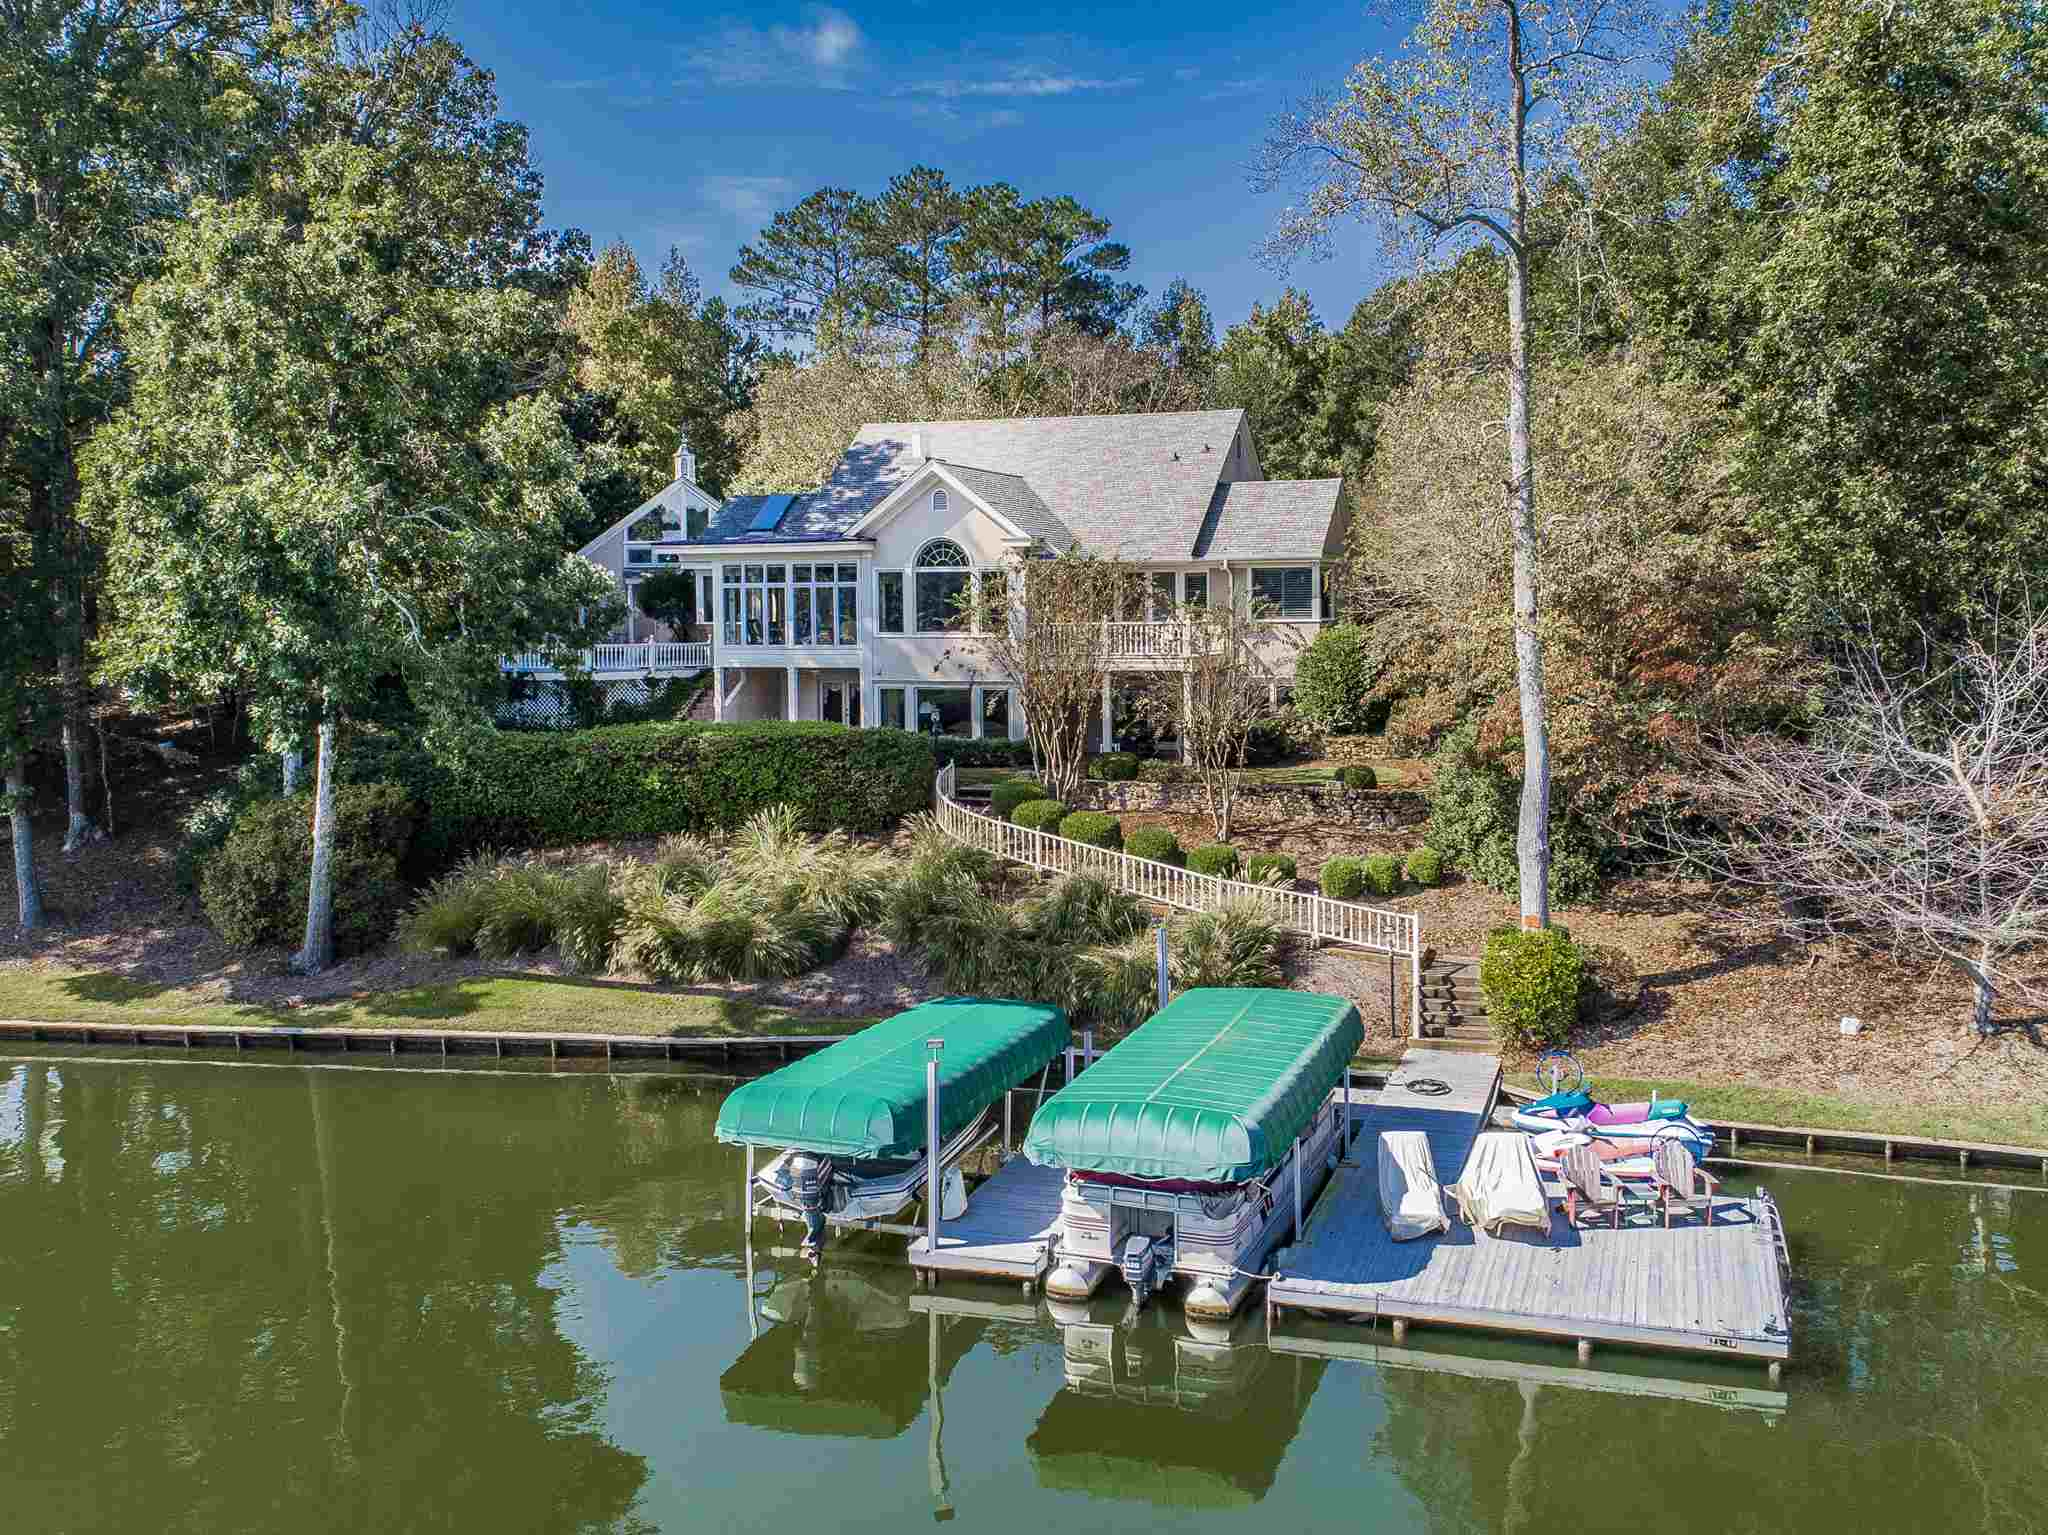 Come home to this charming lakefront home on the shores of Lake Oconee. Views of the lake are seen from every room of this 4 bedroom home. The flow through the Main Level begins in the lovely foyer inside the front door and winds through the dining room, skylit kitchen, breakfast room, and a great room with a fireplace. The Main Level includes a large, private master suite which includes a bathroom with marble counter tops, double closets, and a jetted tub. Outside the breakfast room door is a spacious patio which offers a panoramic view of Lake Oconee as well as room for cooking and dining. The Terrace Level features two large Master Suites on either side of great room featuring another fireplace and a wet bar. Above the garage is a fully featured efficiency apartment for family or guests. Lake activities are just steps away with a max dock with two boat lifts and two jet ski lifts. Golf membership available.